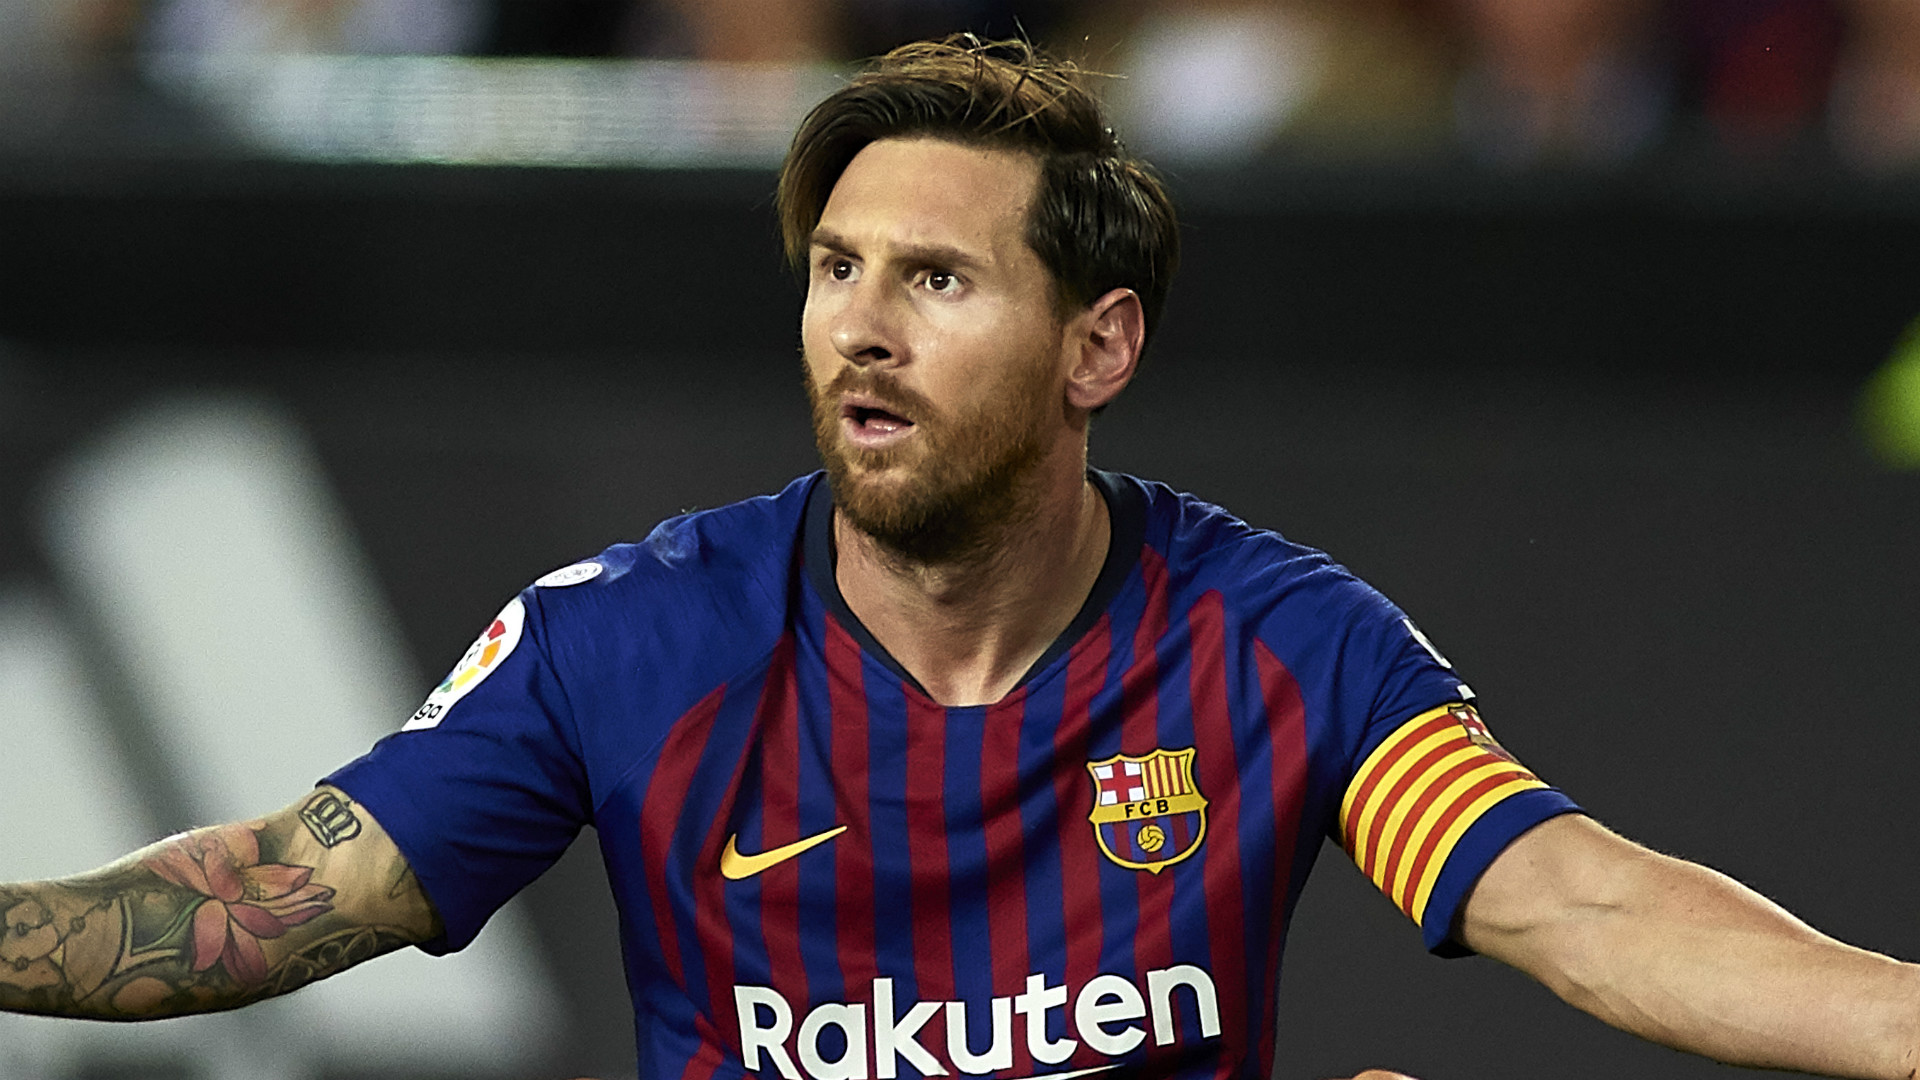 Barcelona know when captain Messi is angry - Abidal